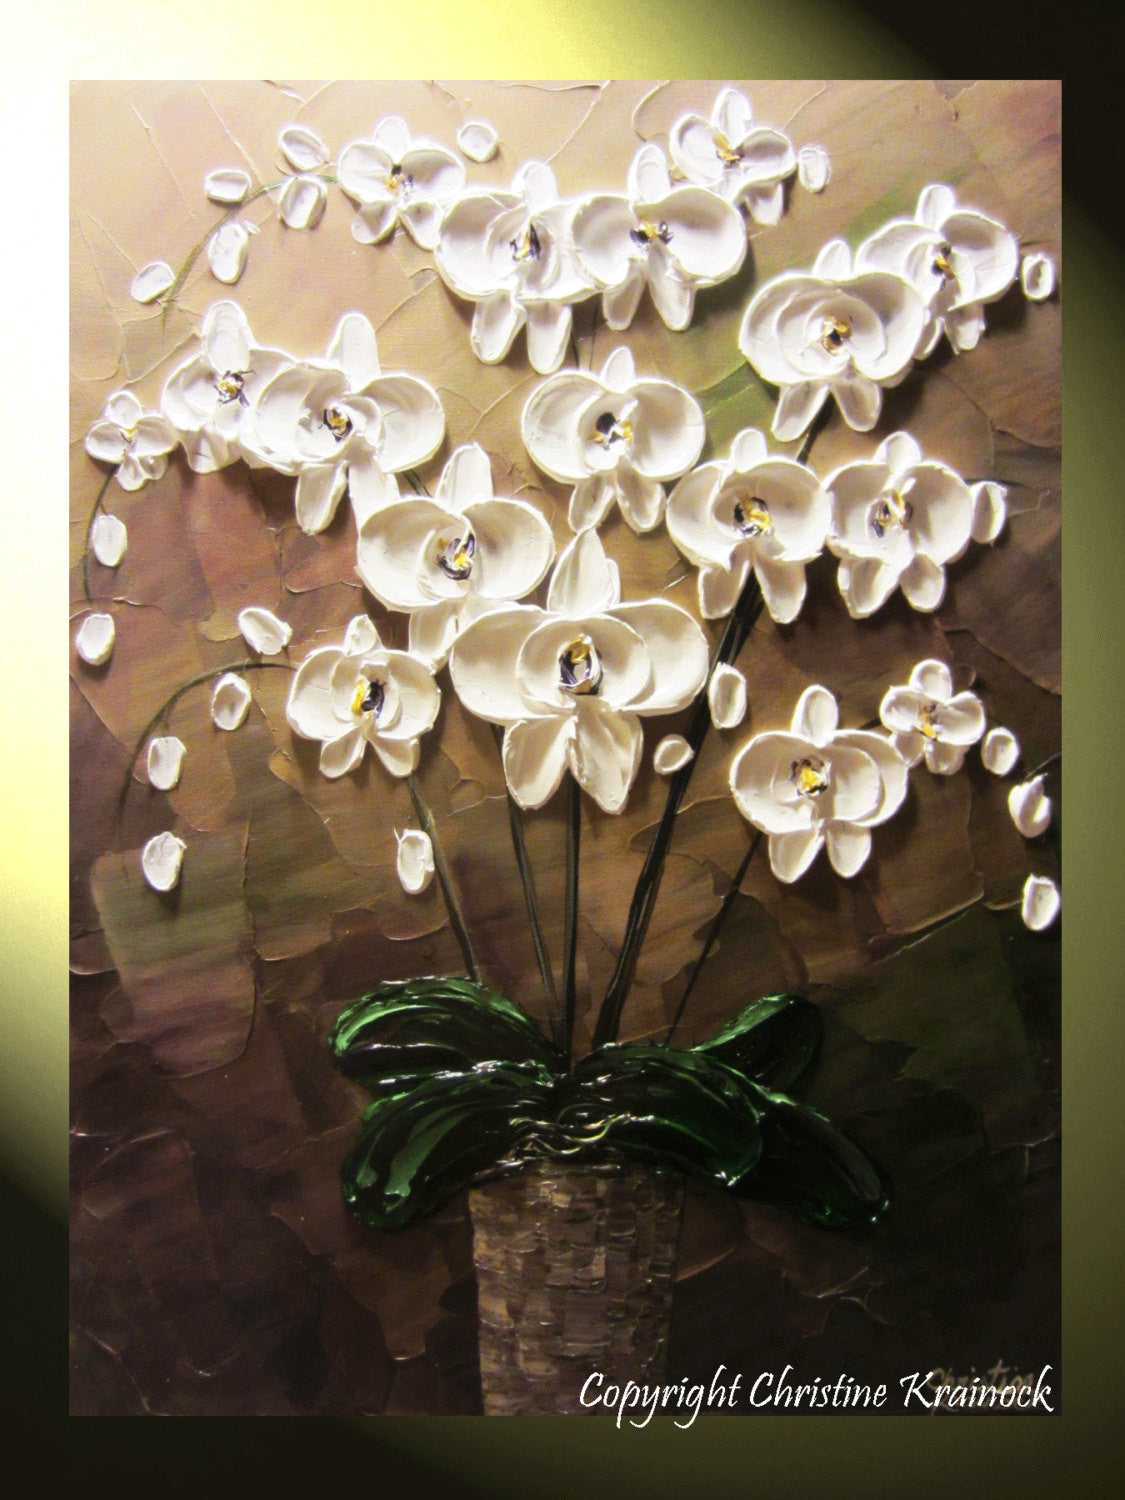 Sold original art abstract painting orchids white flowers textured sold original art abstract painting orchids white flowers textured modern brown taupe green wall art wall decor christine krainock mightylinksfo